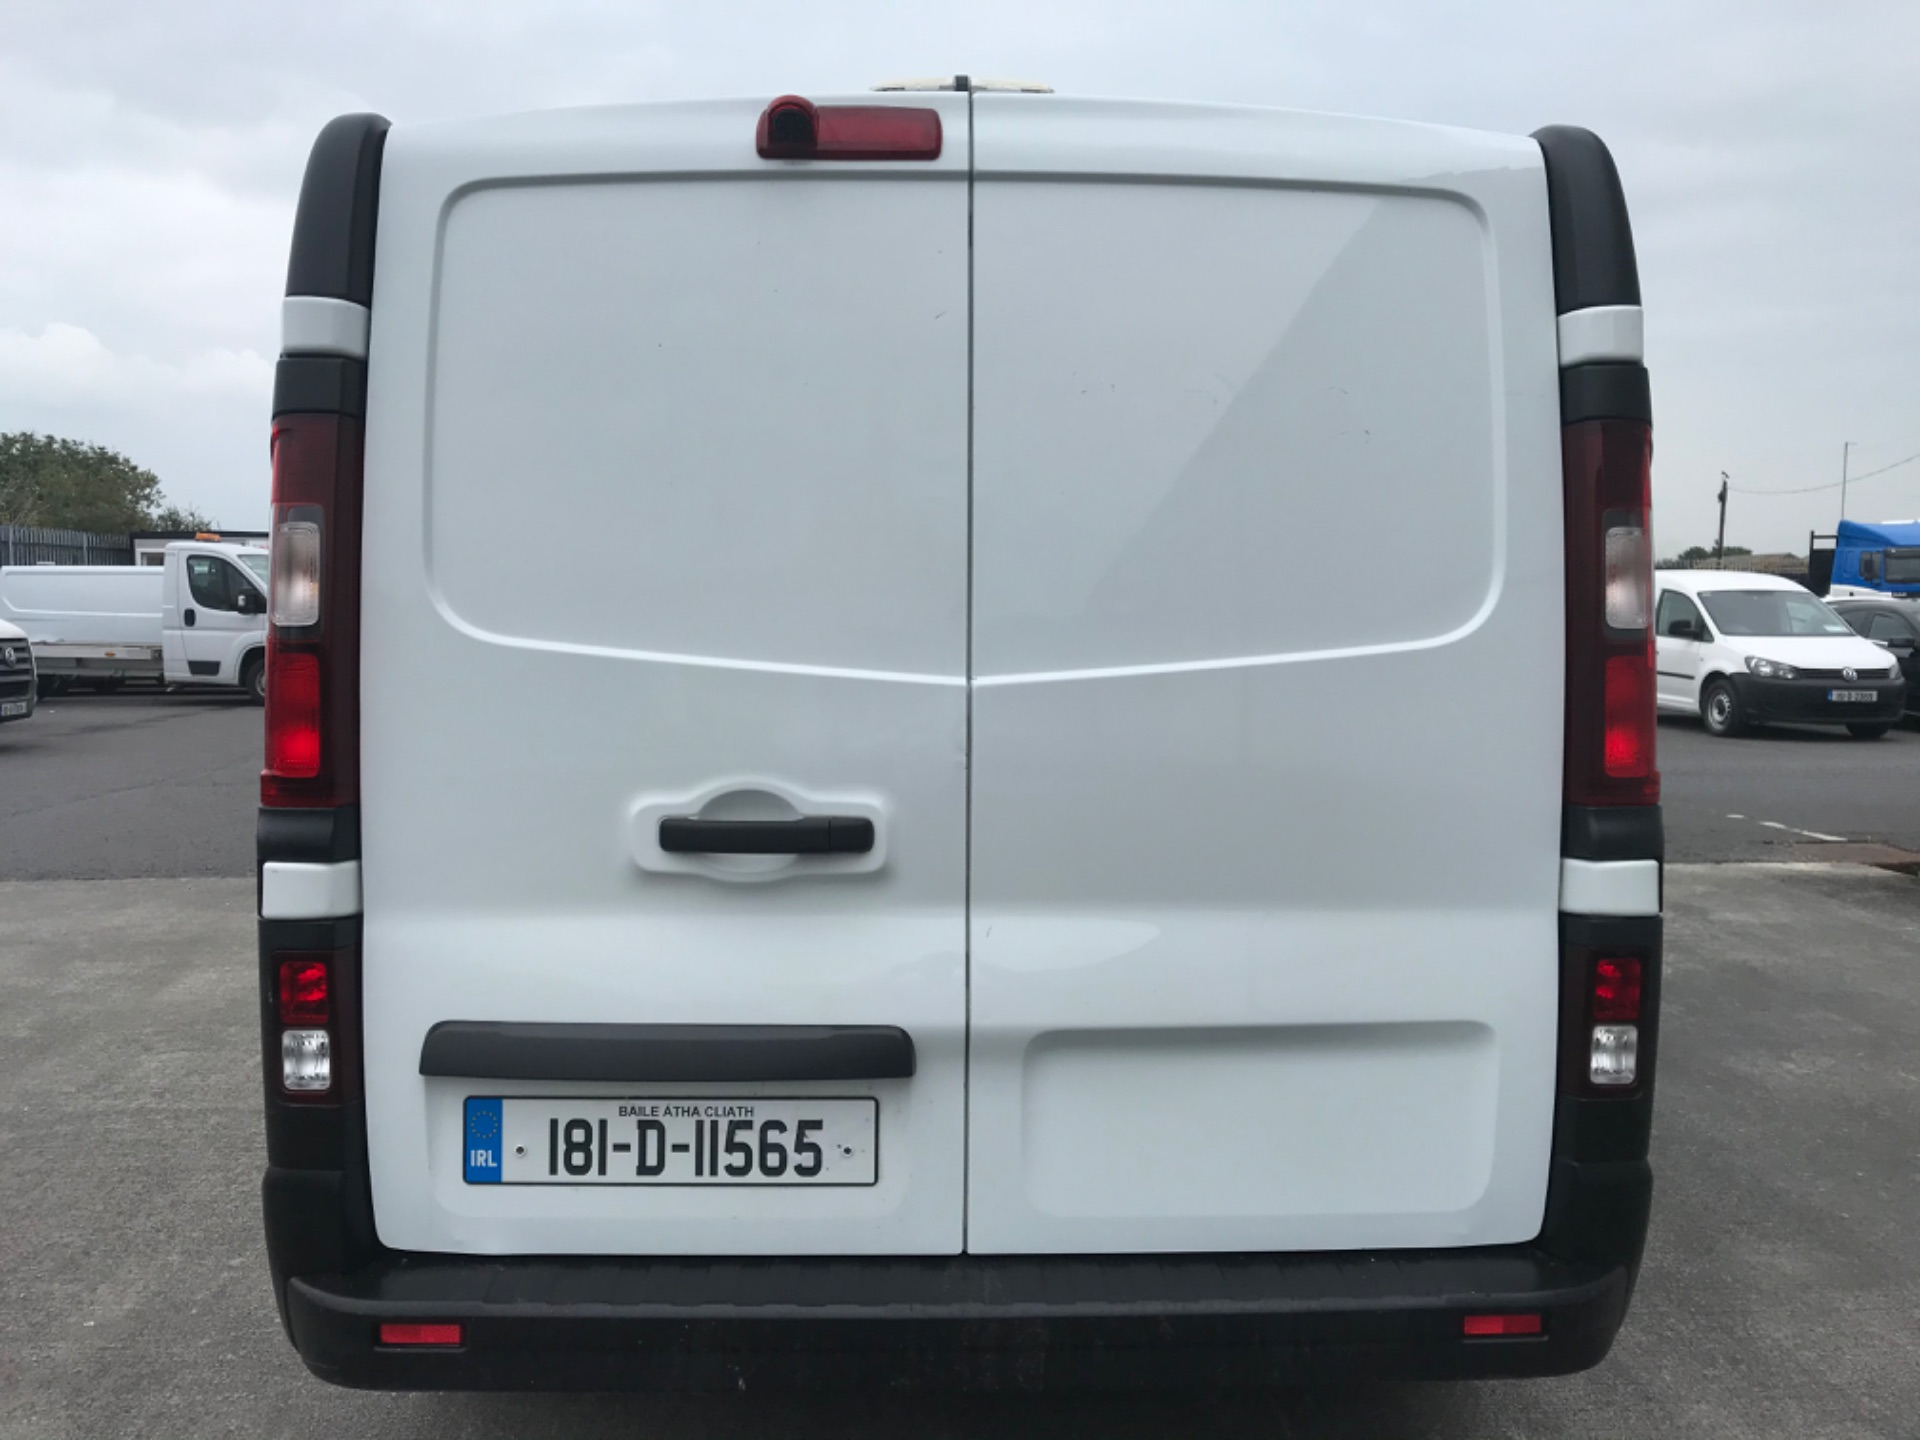 2018 Renault Trafic LL29 DCI 120 Business 3DR (181D11565) Image 6